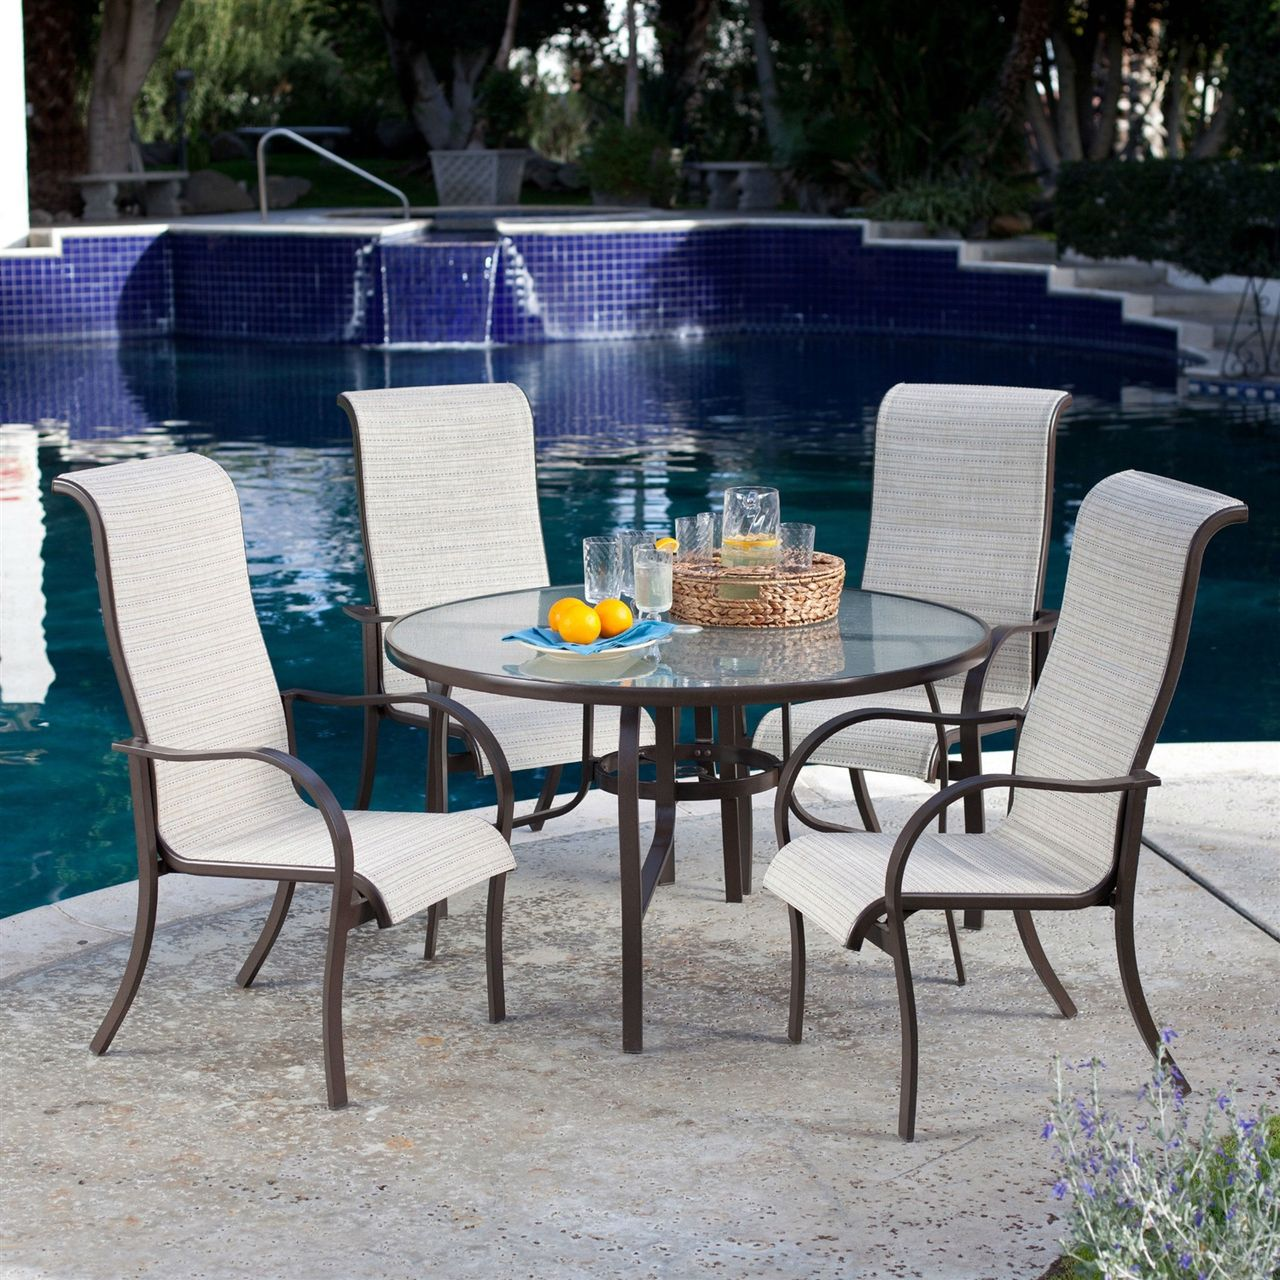 5 PC Patio Furniture Dining Set, Round Table, 4 Padded Sling Chairs ...